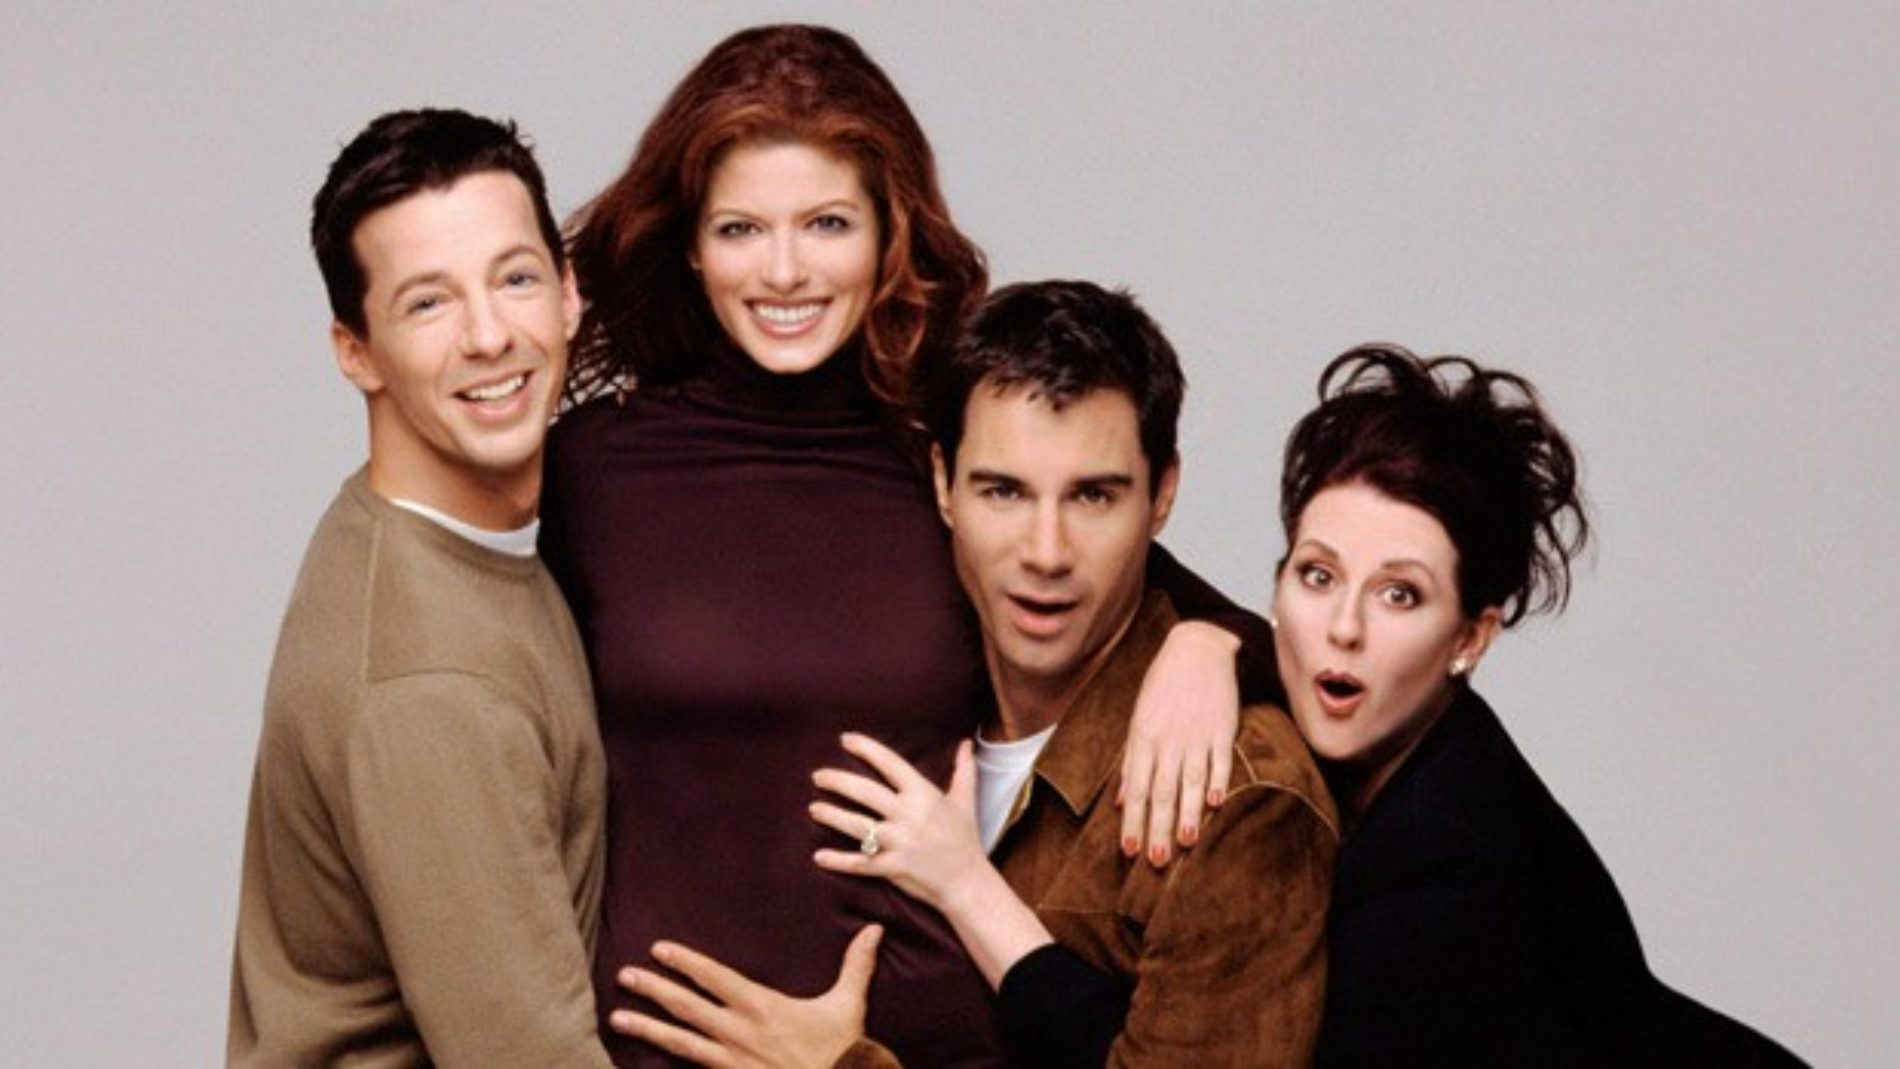 'Will & Grace' definitely set to return as NBC orders 10 new episodes